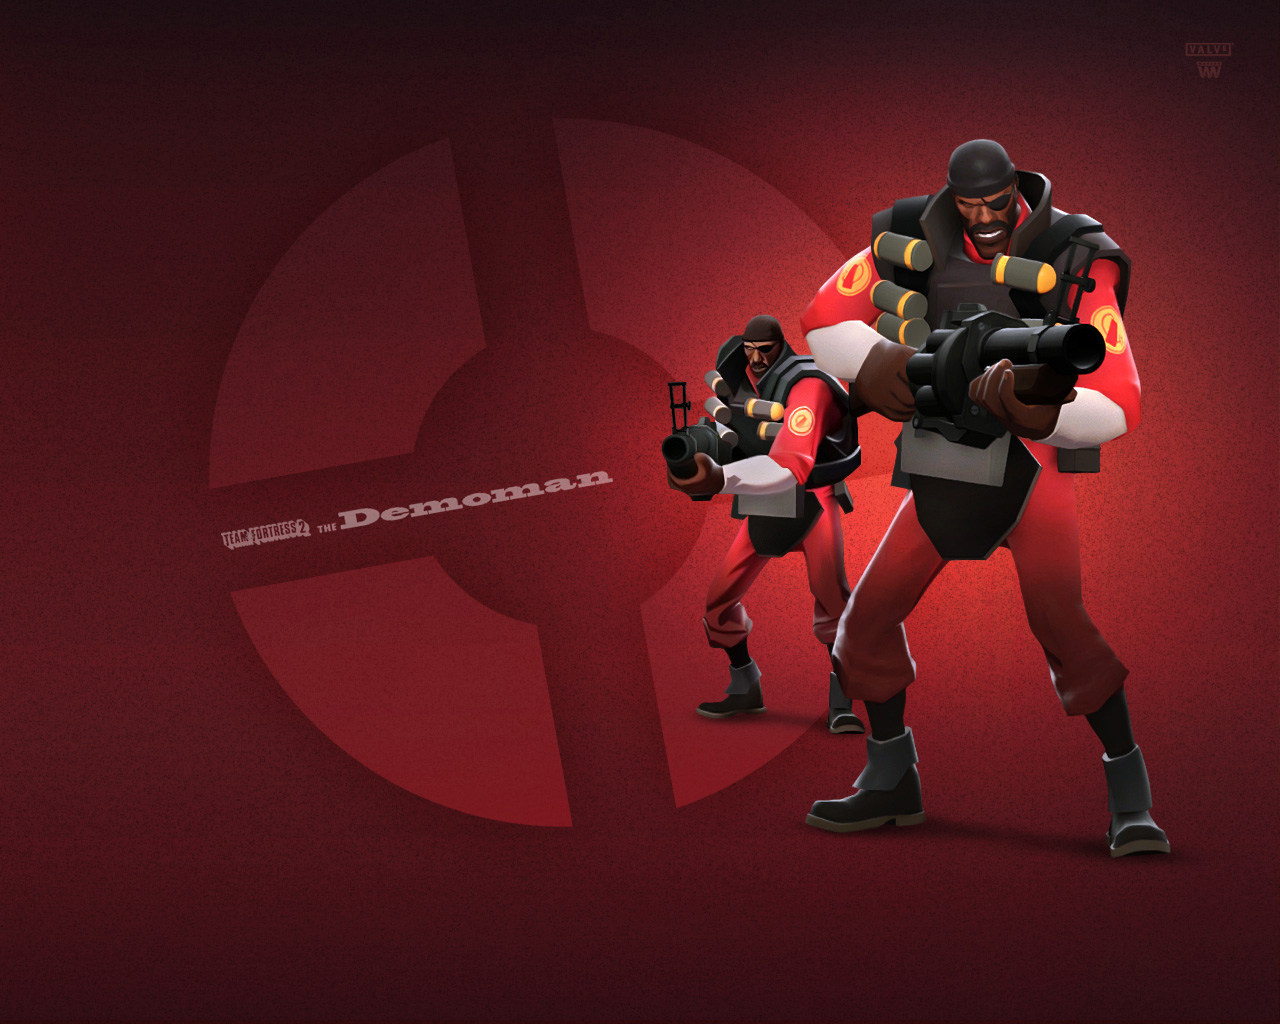 Video Game Team Fortress 2 1280x1024